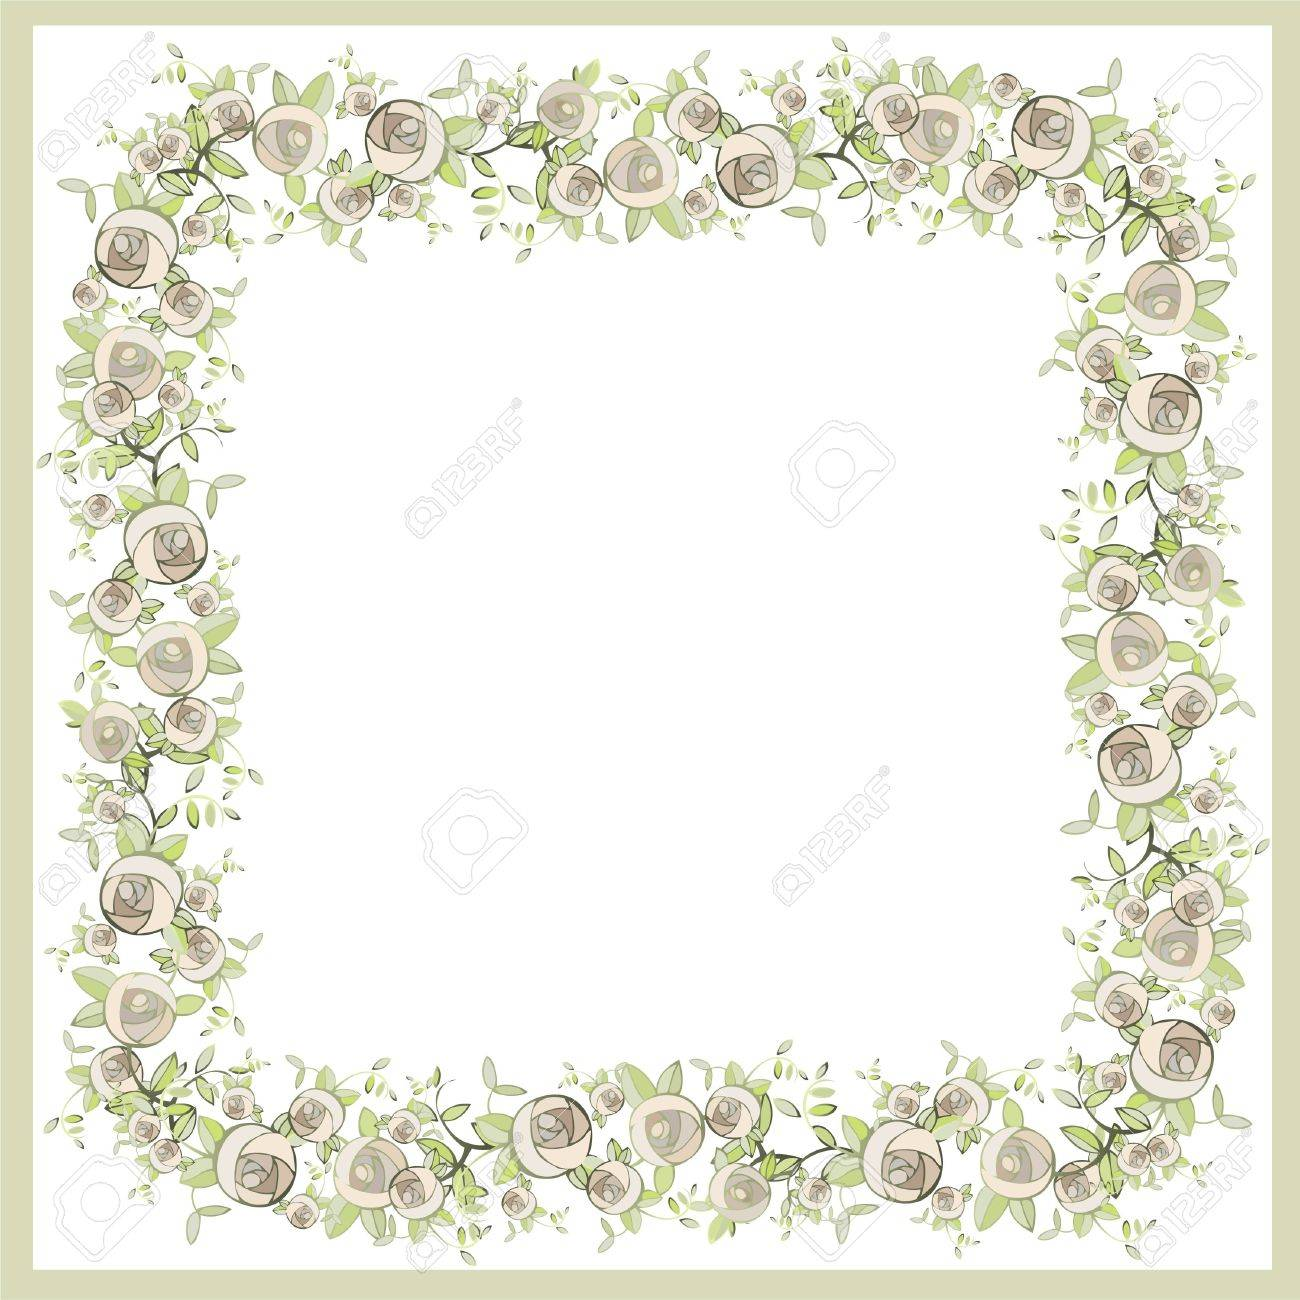 Beautiful decorative framework with flowers. Greeting card with rose. Stock Vector - 9420571